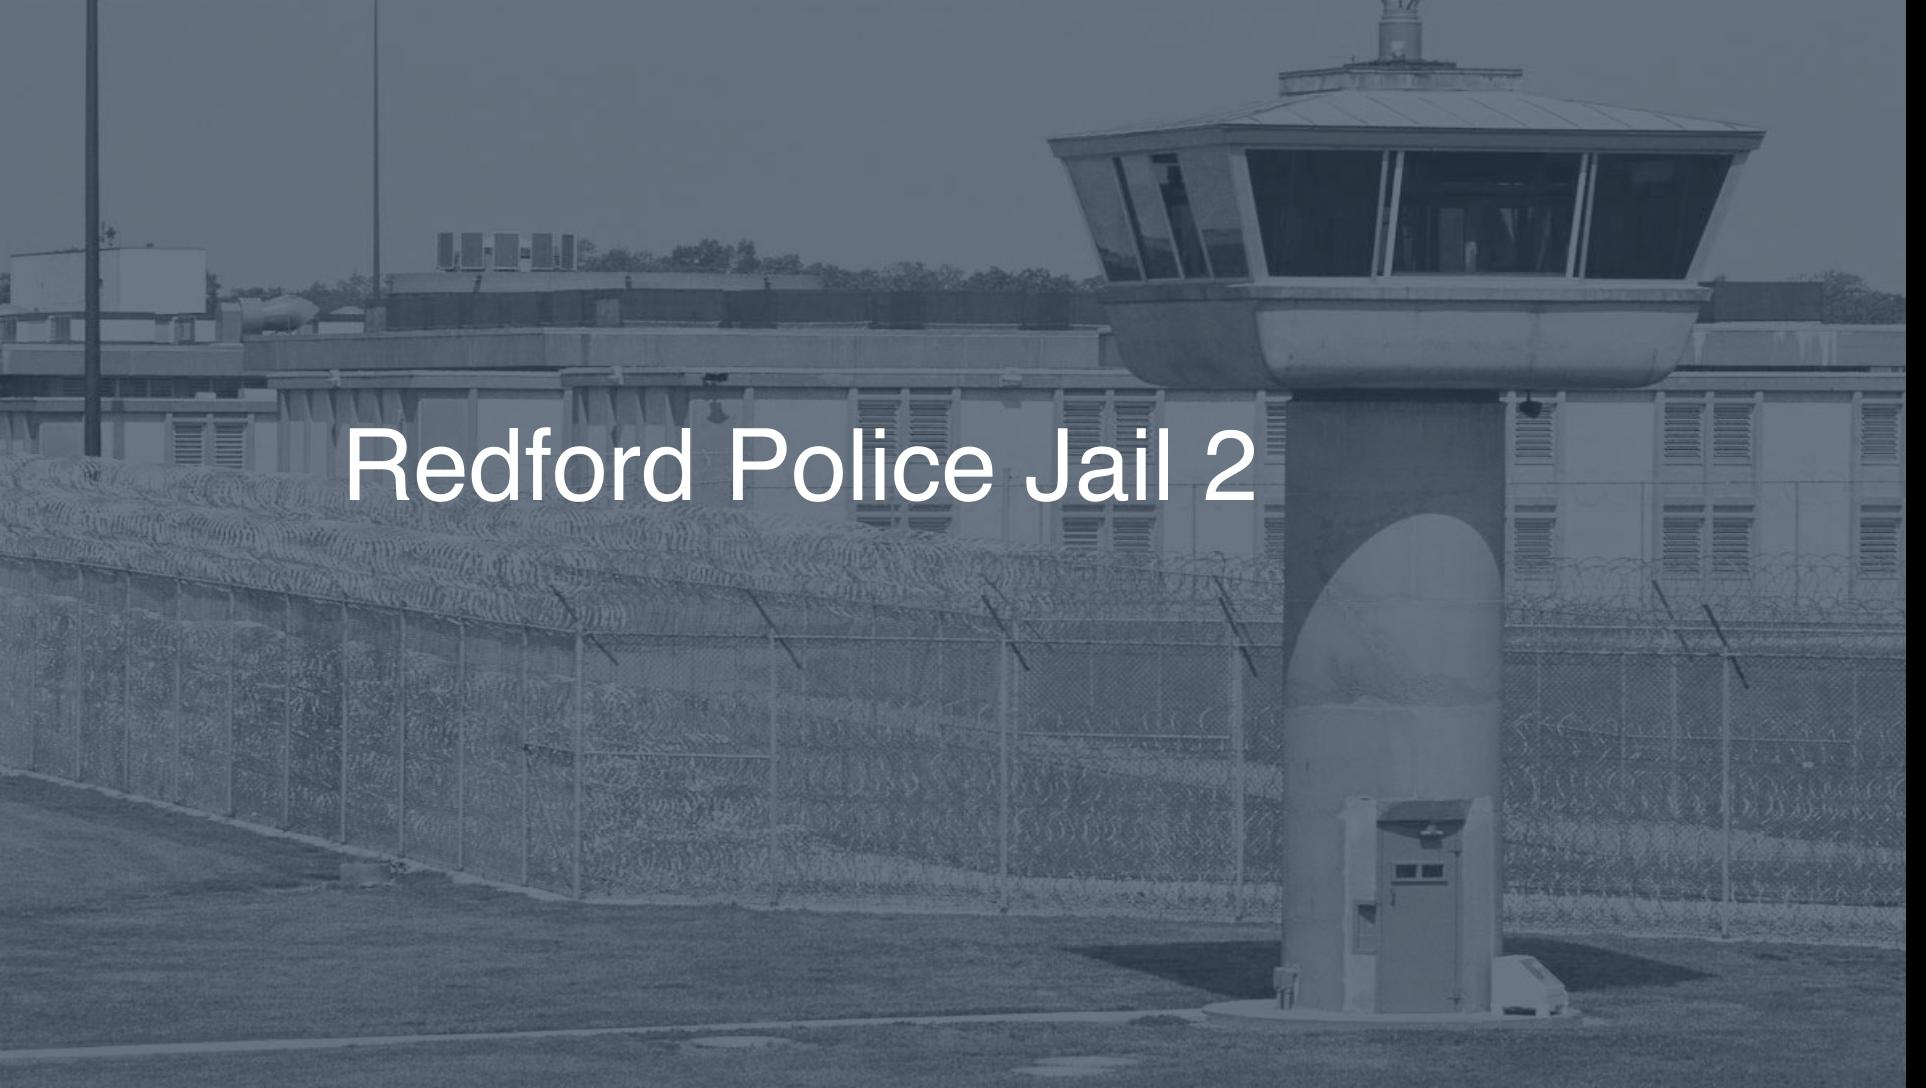 Redford Police Jail correctional facility picture